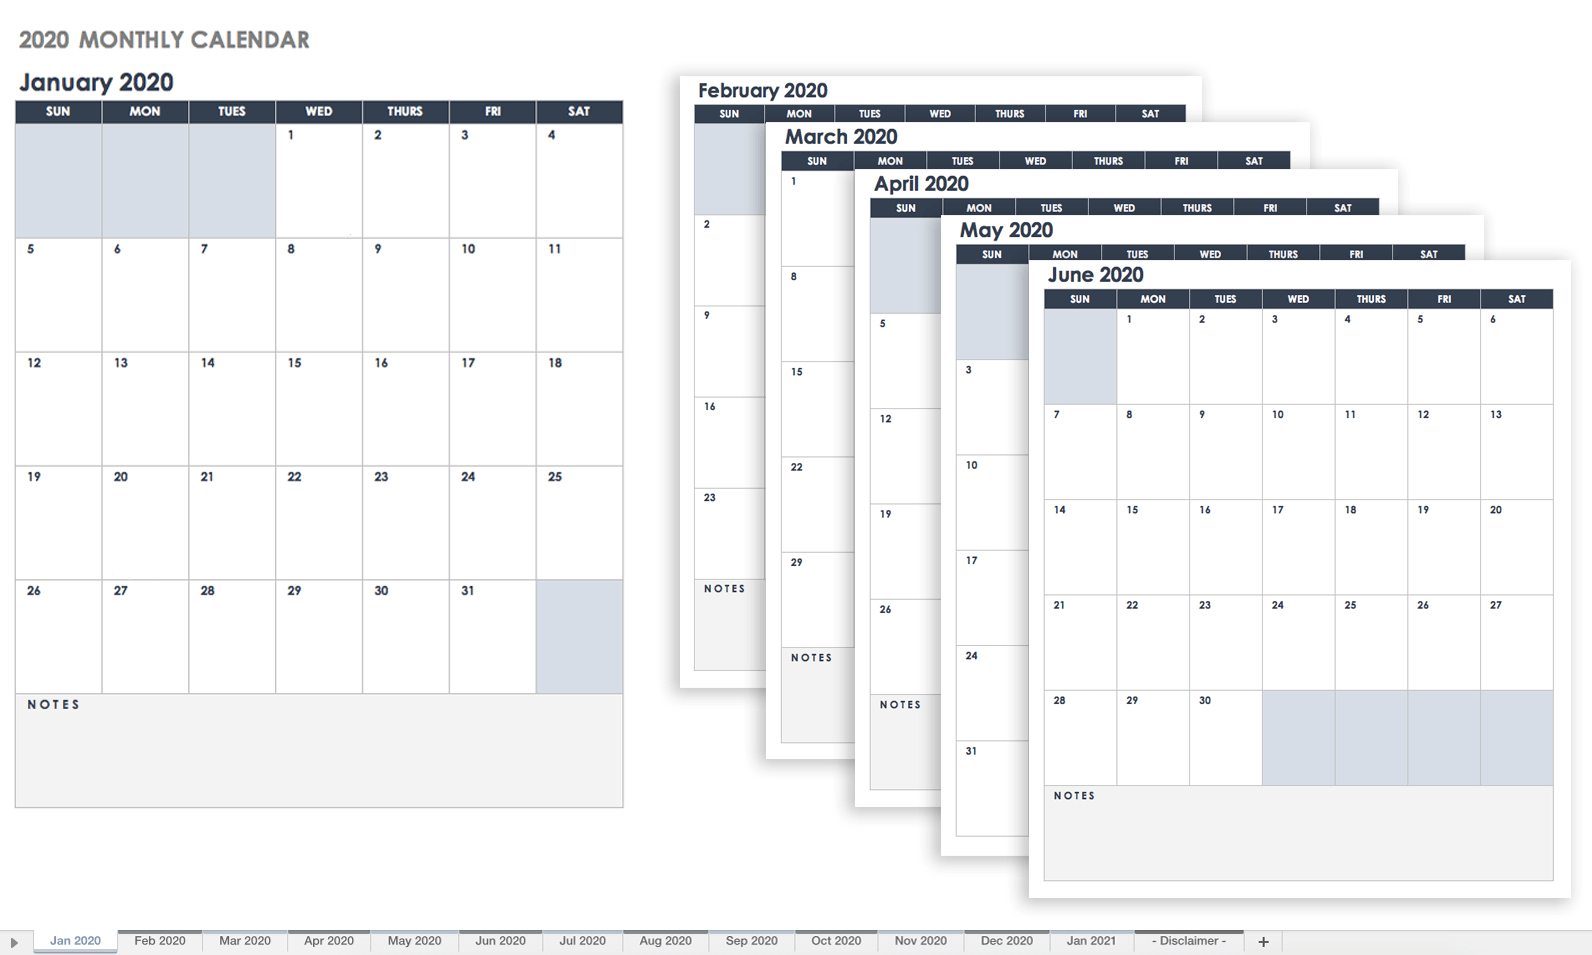 Free Google Calendar Templates | Smartsheet intended for Month By Month Blank Calendar